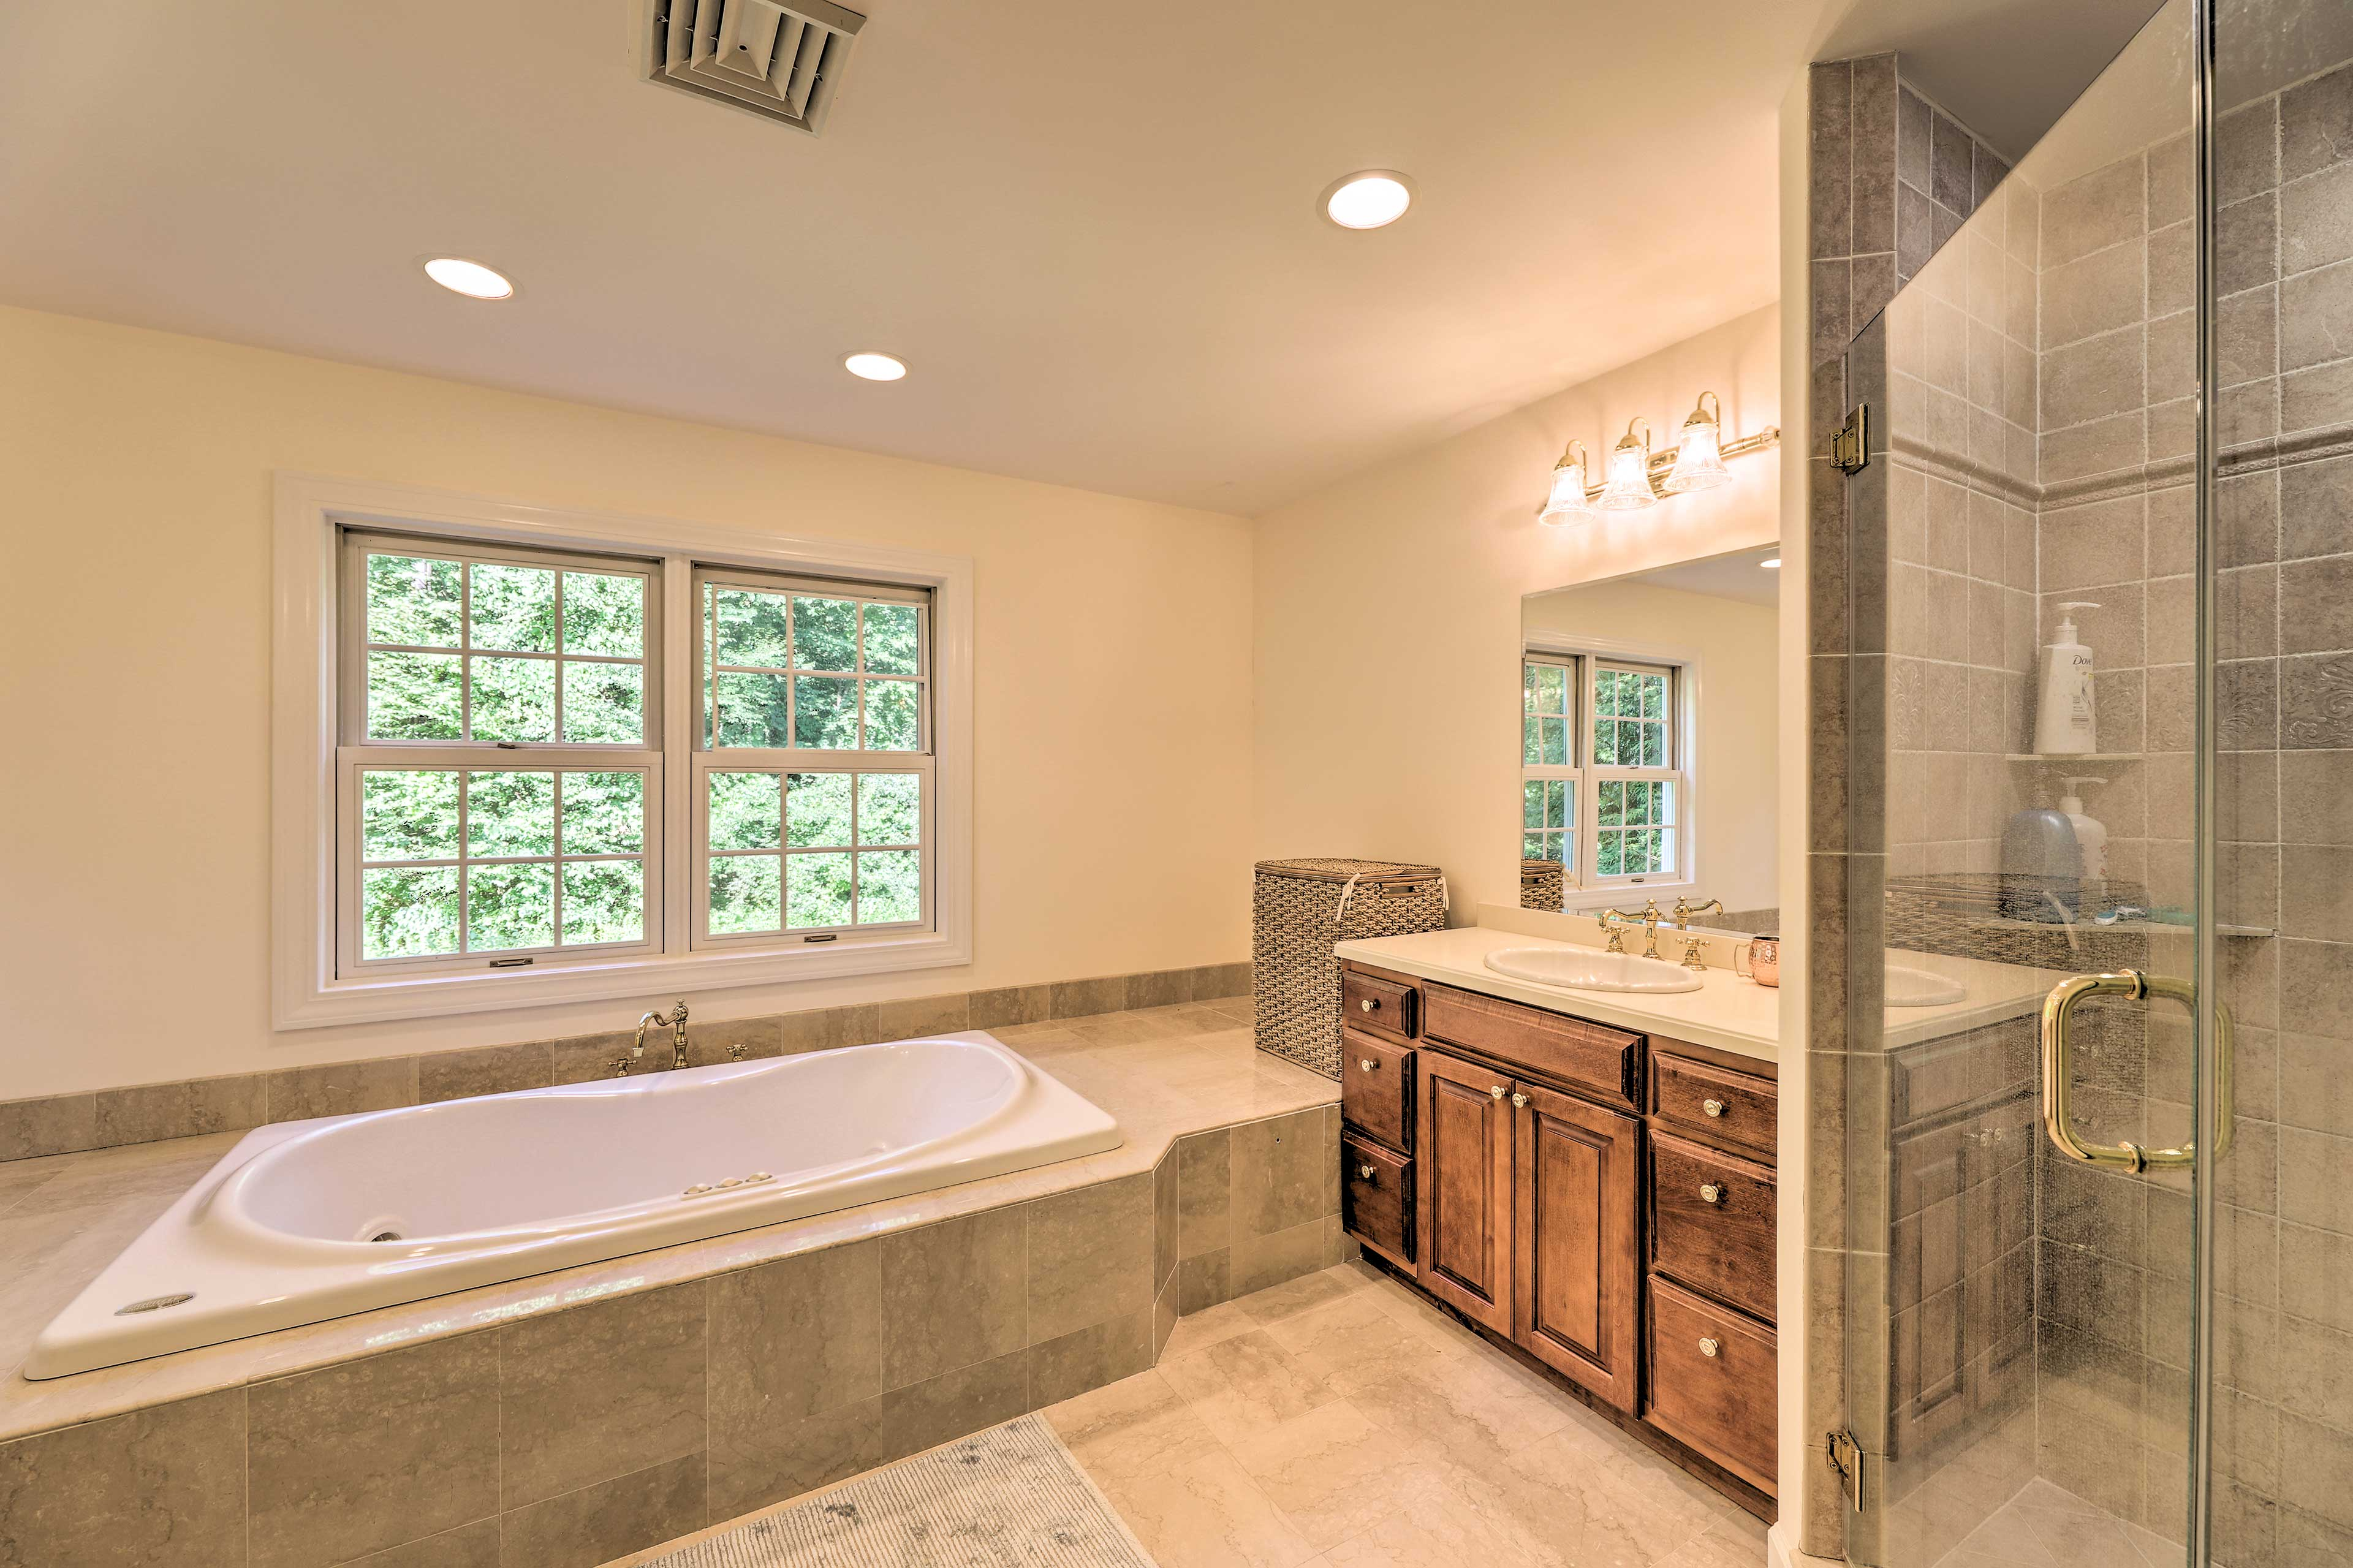 Soak your worries away in the master's jetted tub!